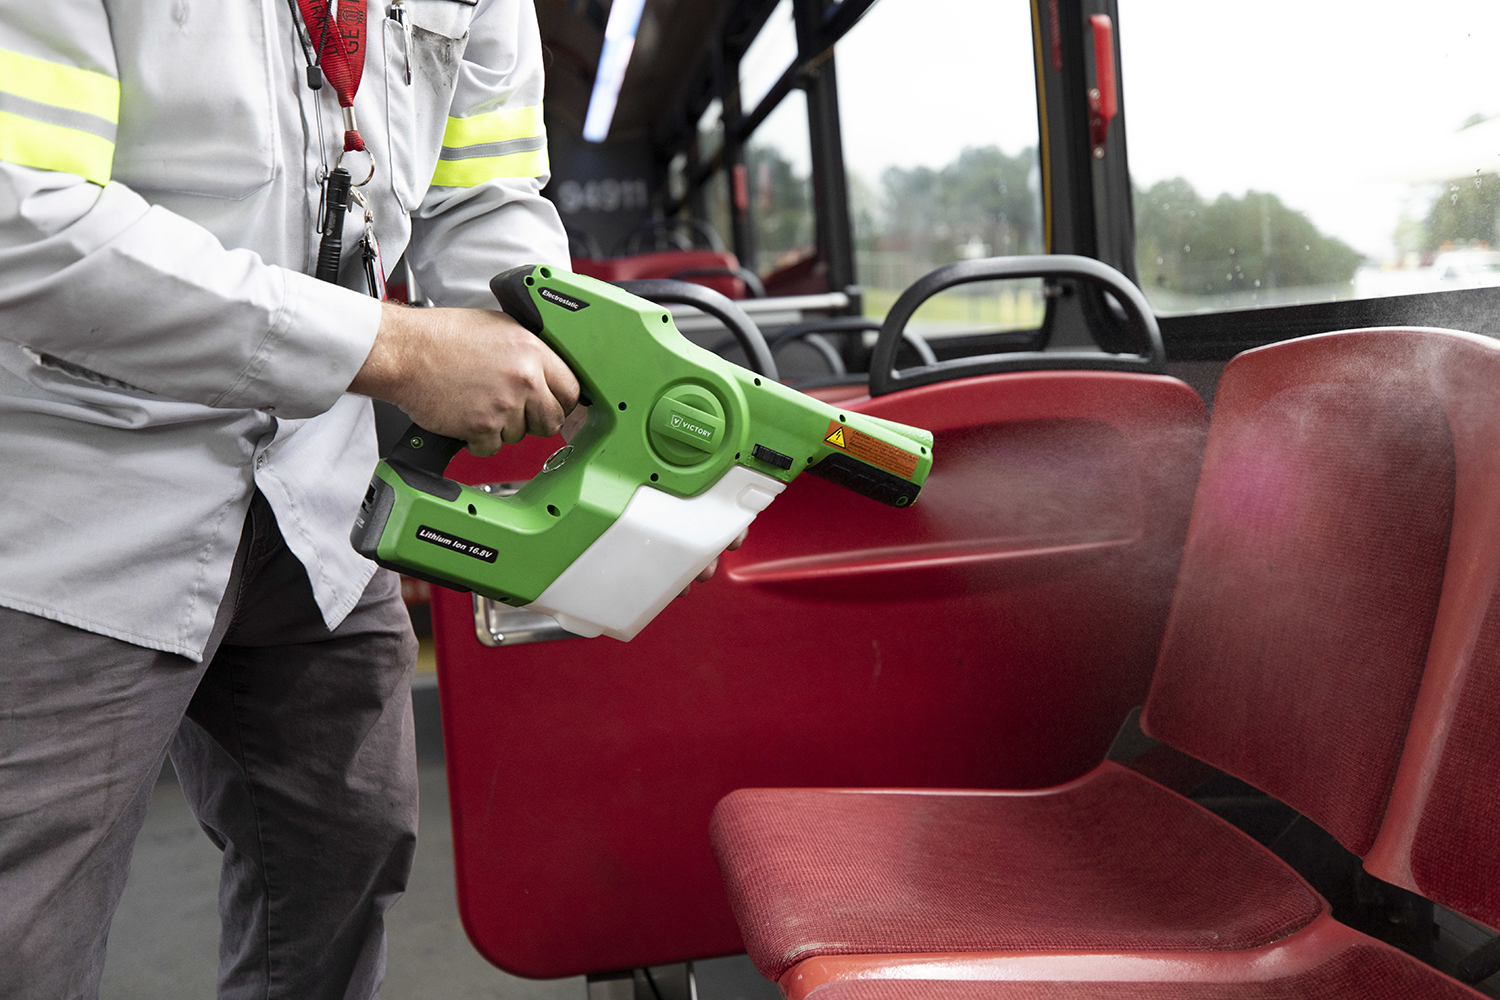 Photo of a sanitation sprayer spraying mist on a bus seat.